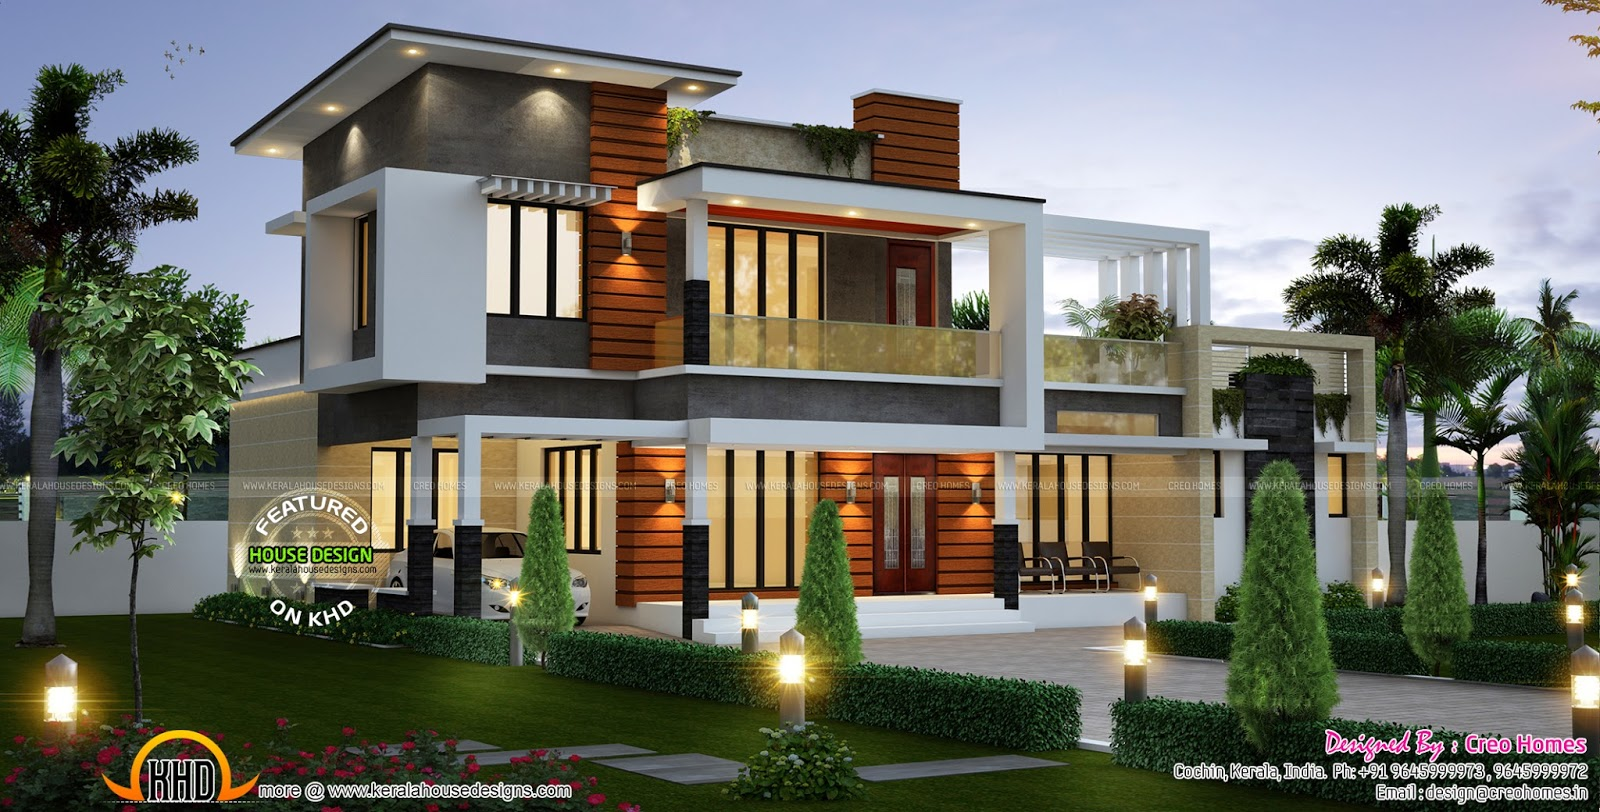 2075 sq ft modern contemporary house kerala home design for Digital house design